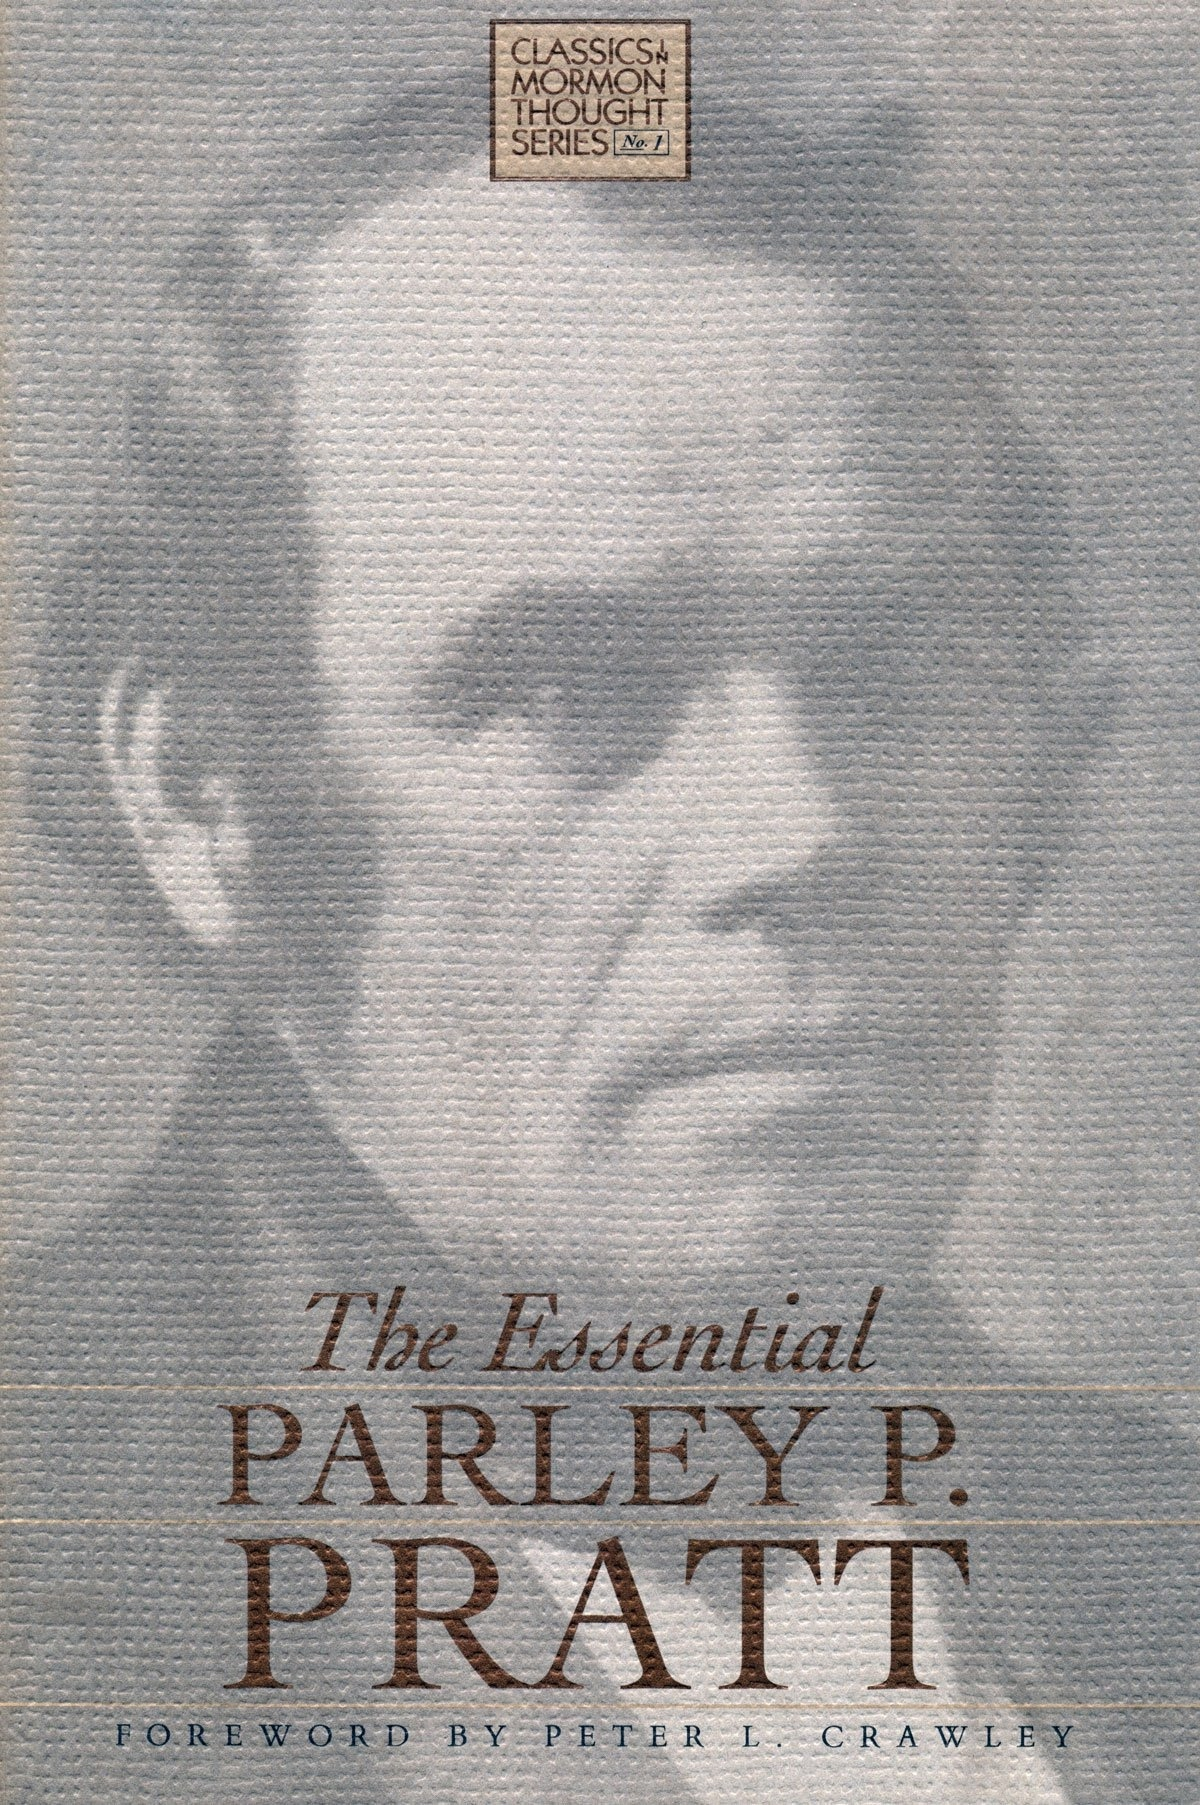 Image for THE ESSENTIAL PARLEY P. PRATT